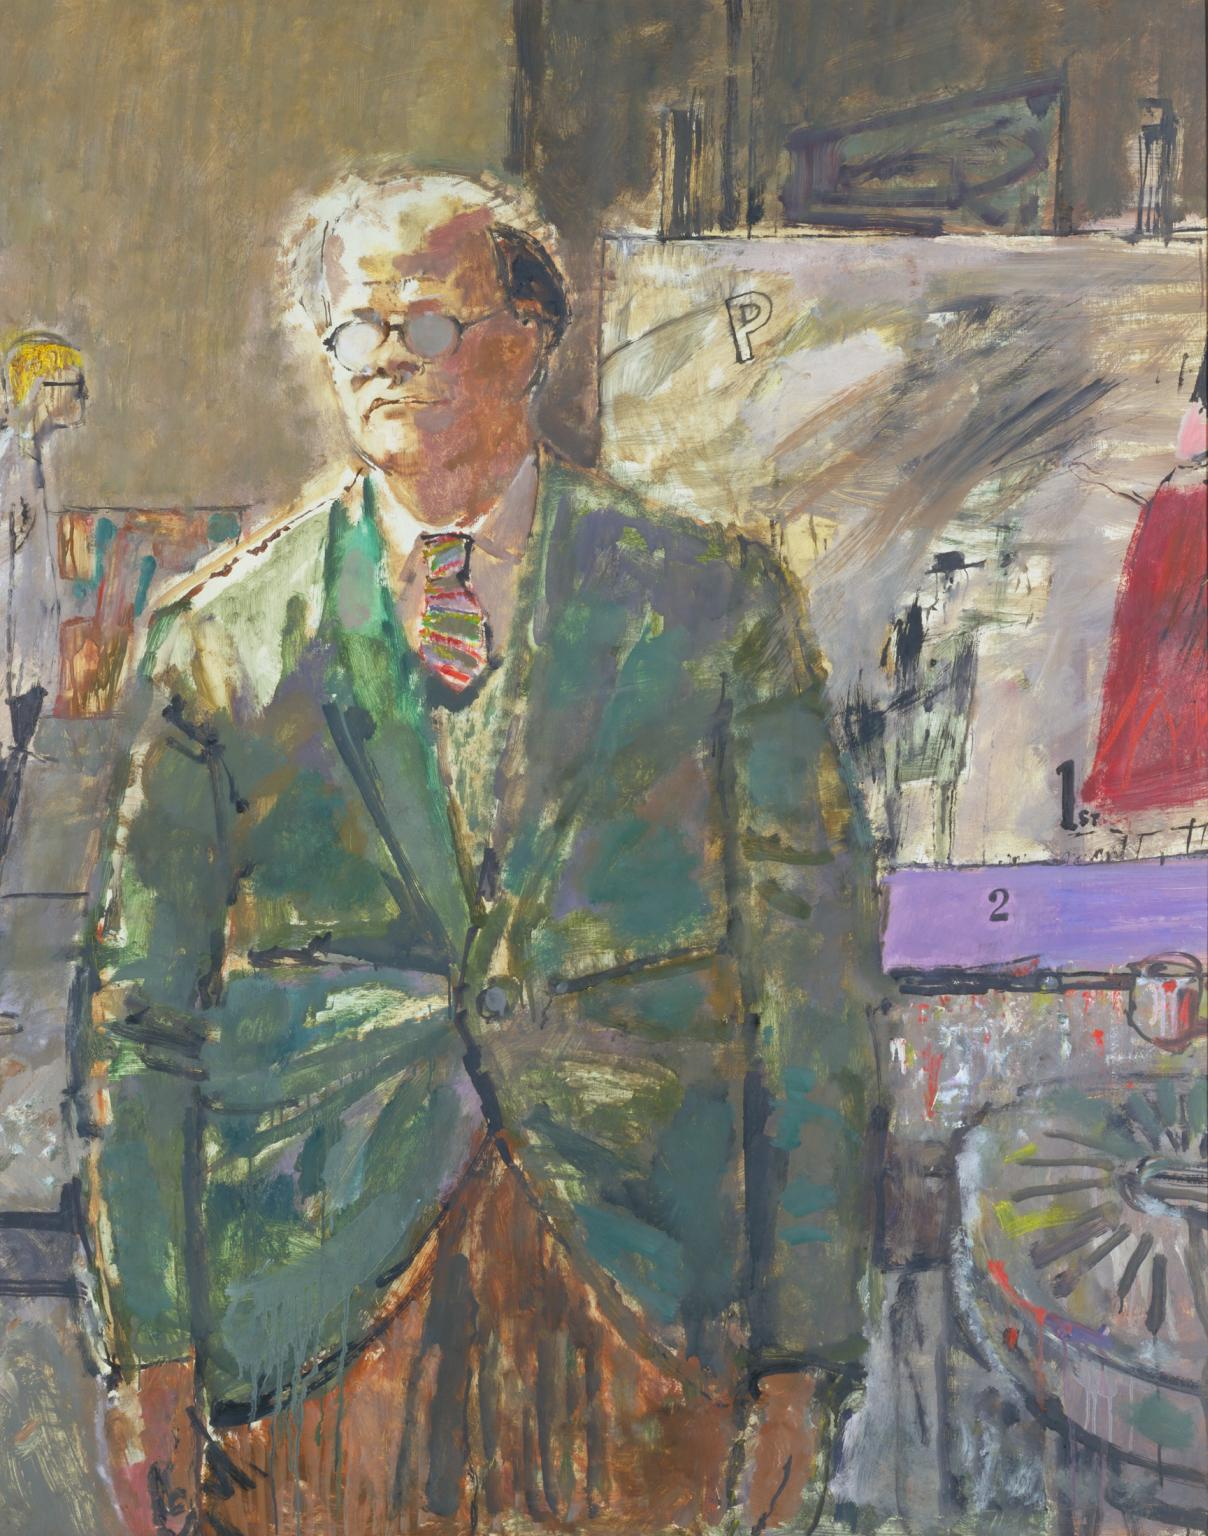 Professor Carel Weight 1961 by Ruskin Spear 1911-1990